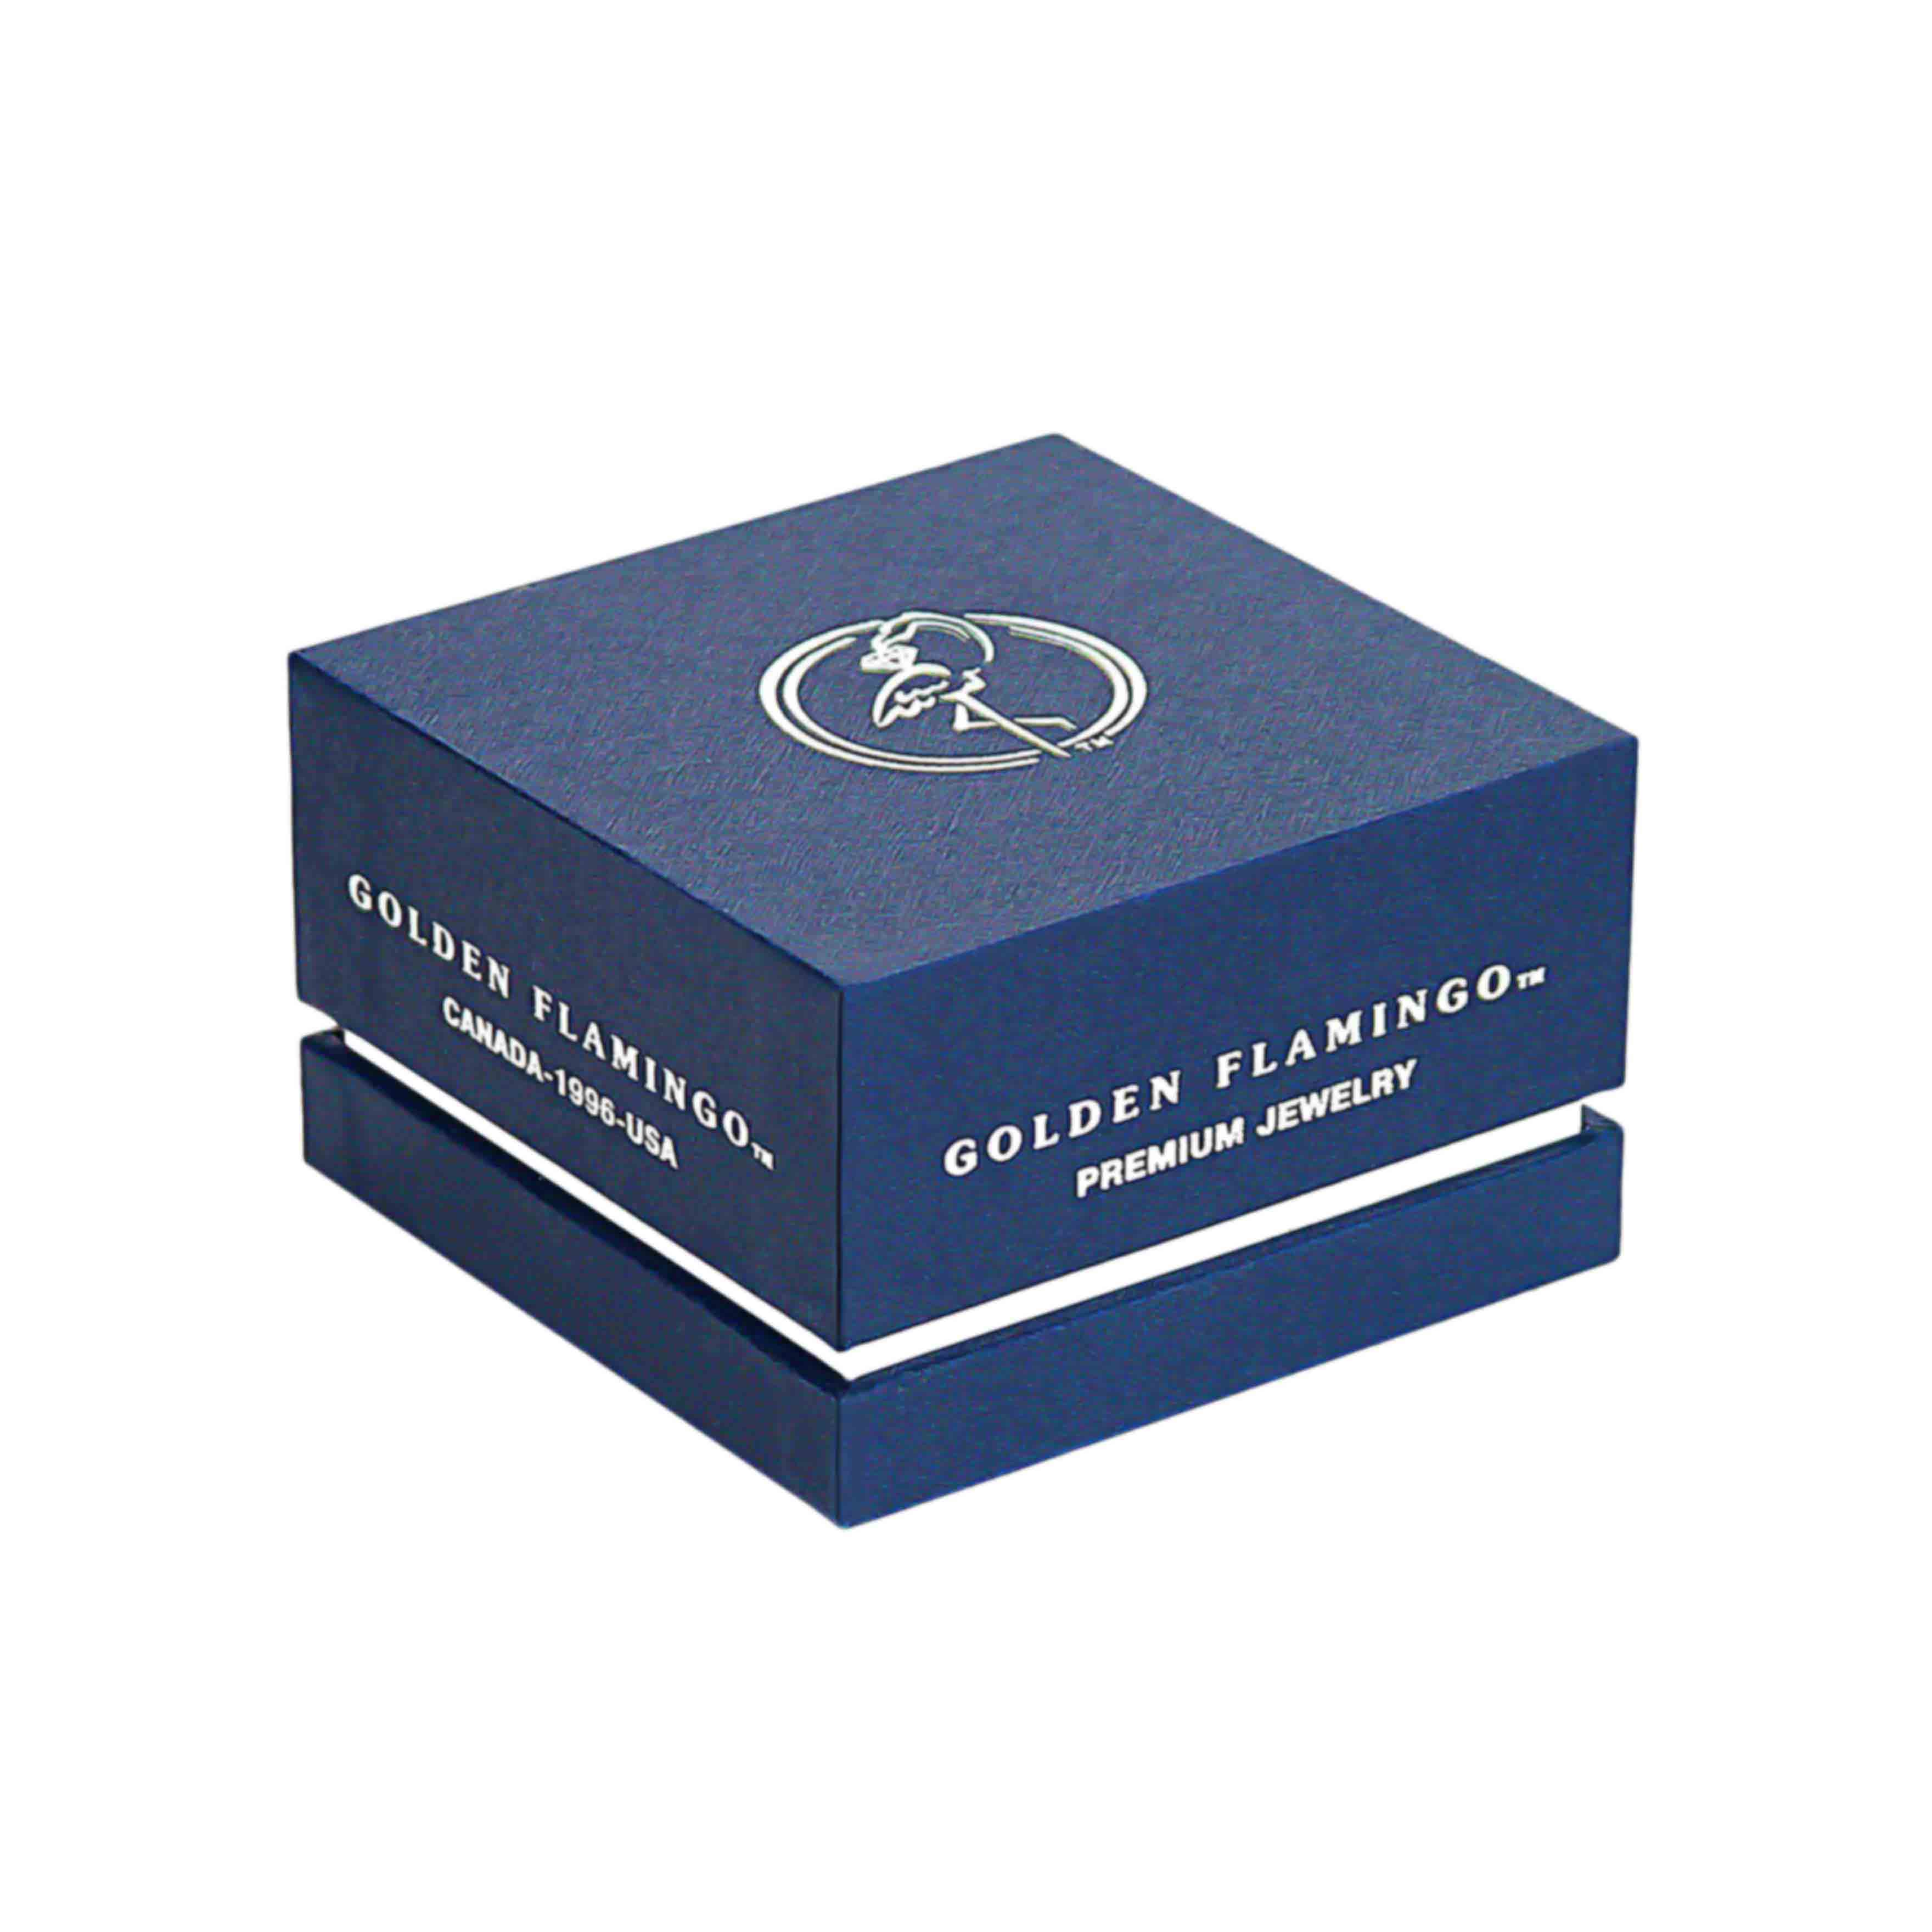 Boutique-quality gift box for gold ring.